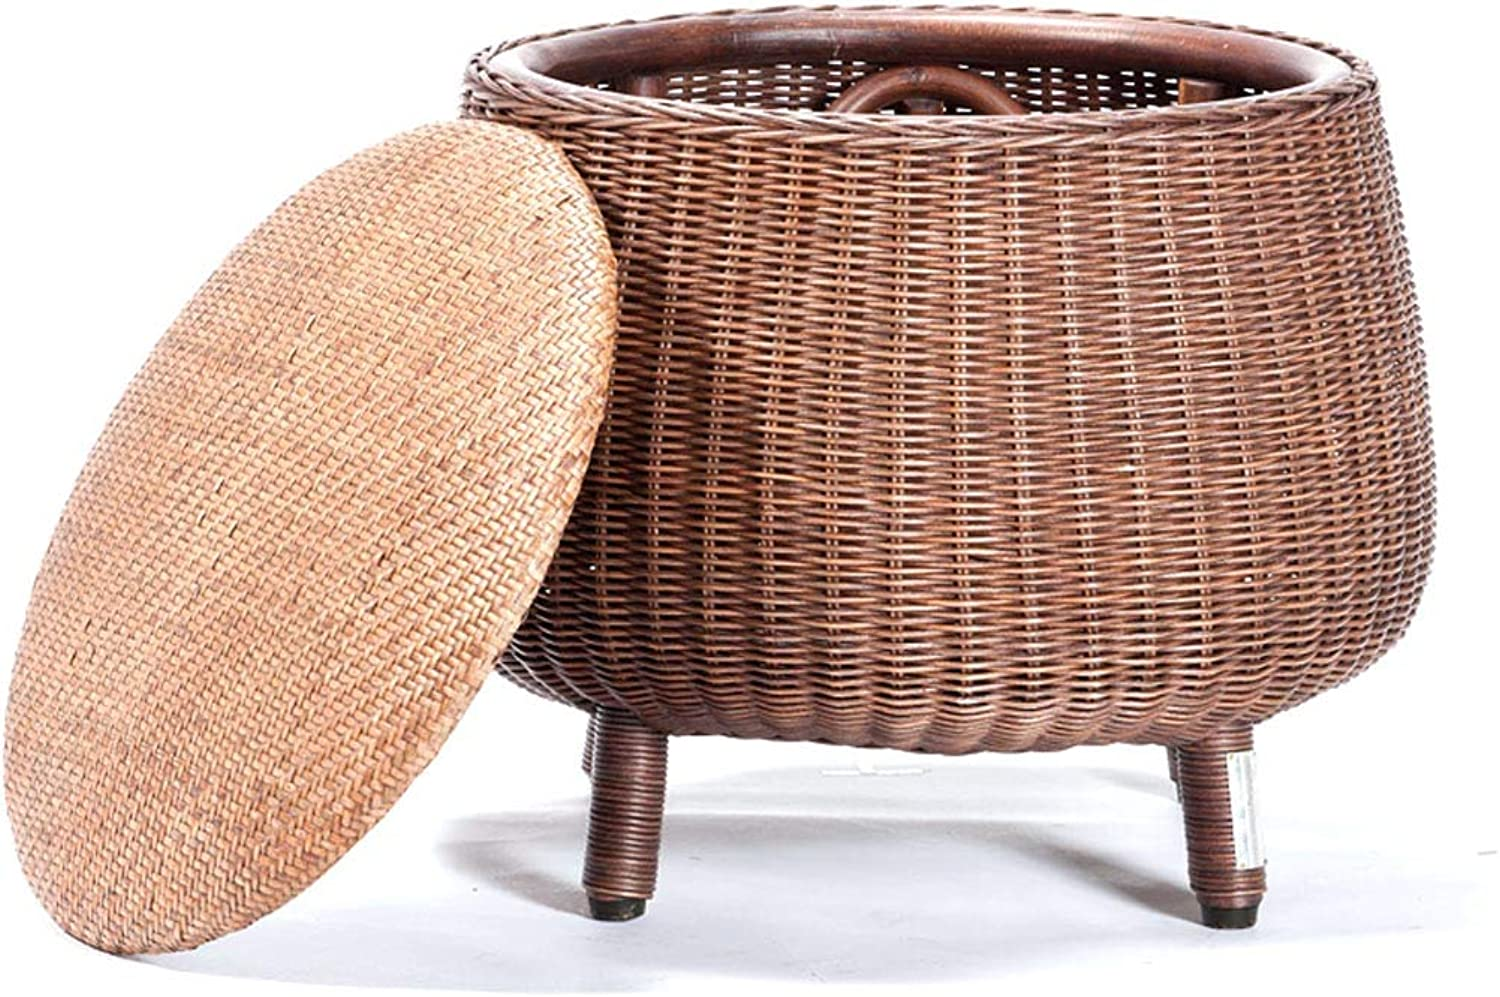 Storage Stool Footrest, Rustic Stool, Creative Rattan Stool, Home shoes Bench, Suitable for Living Room, Bedroom, Balcony (40×38cm)